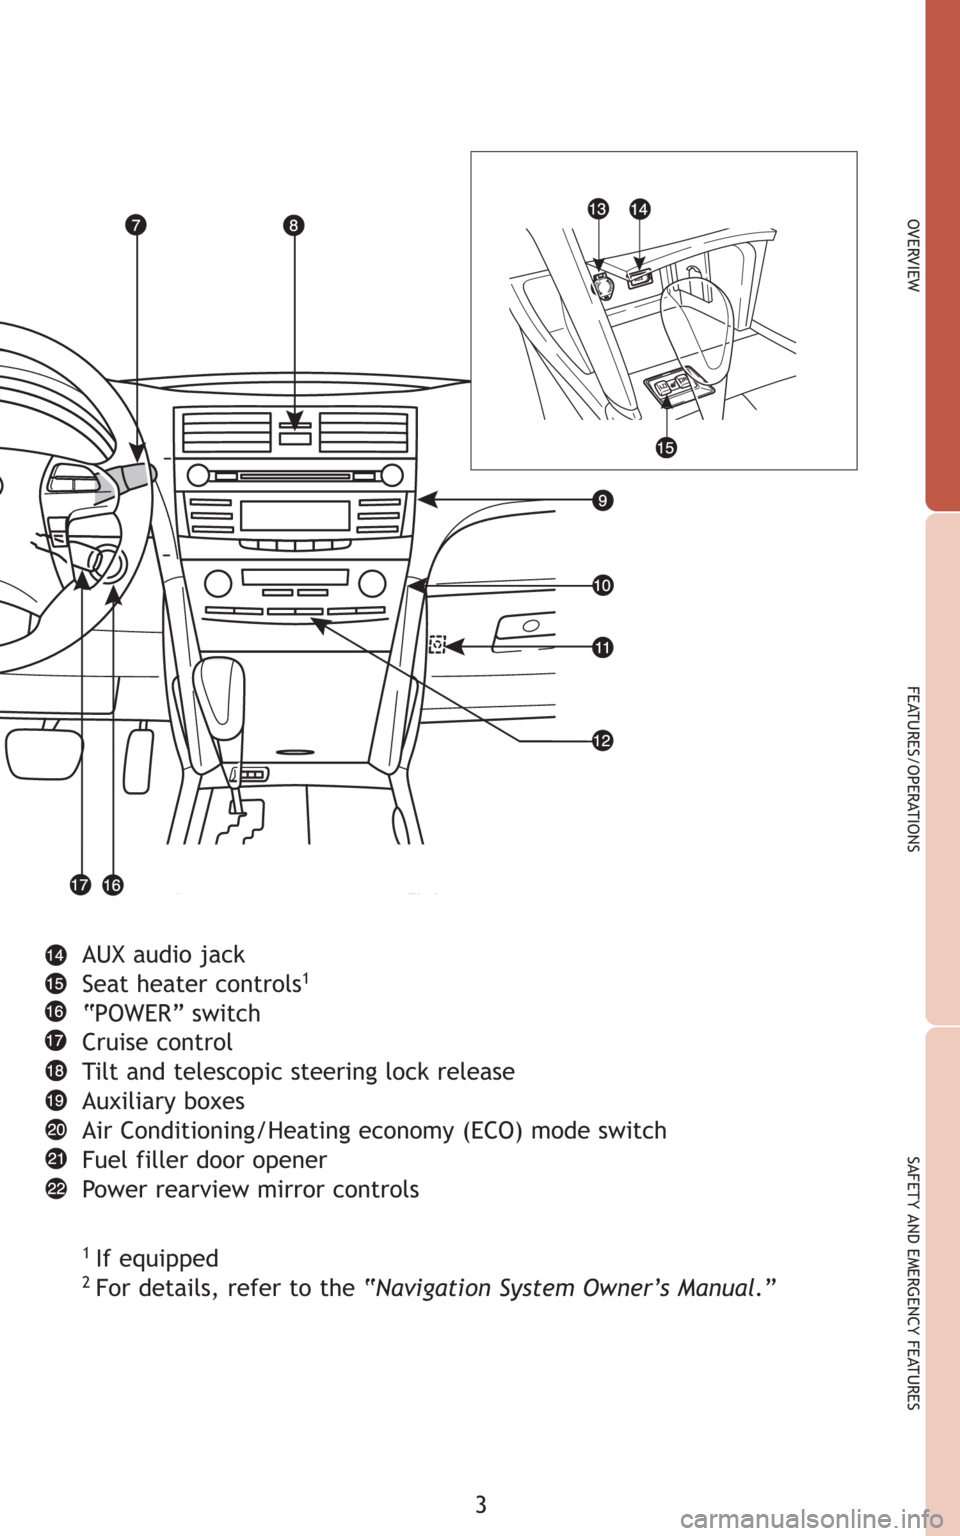 TOYOTA CAMRY HYBRID 2008 XV40 / 8.G Quick Reference Guide